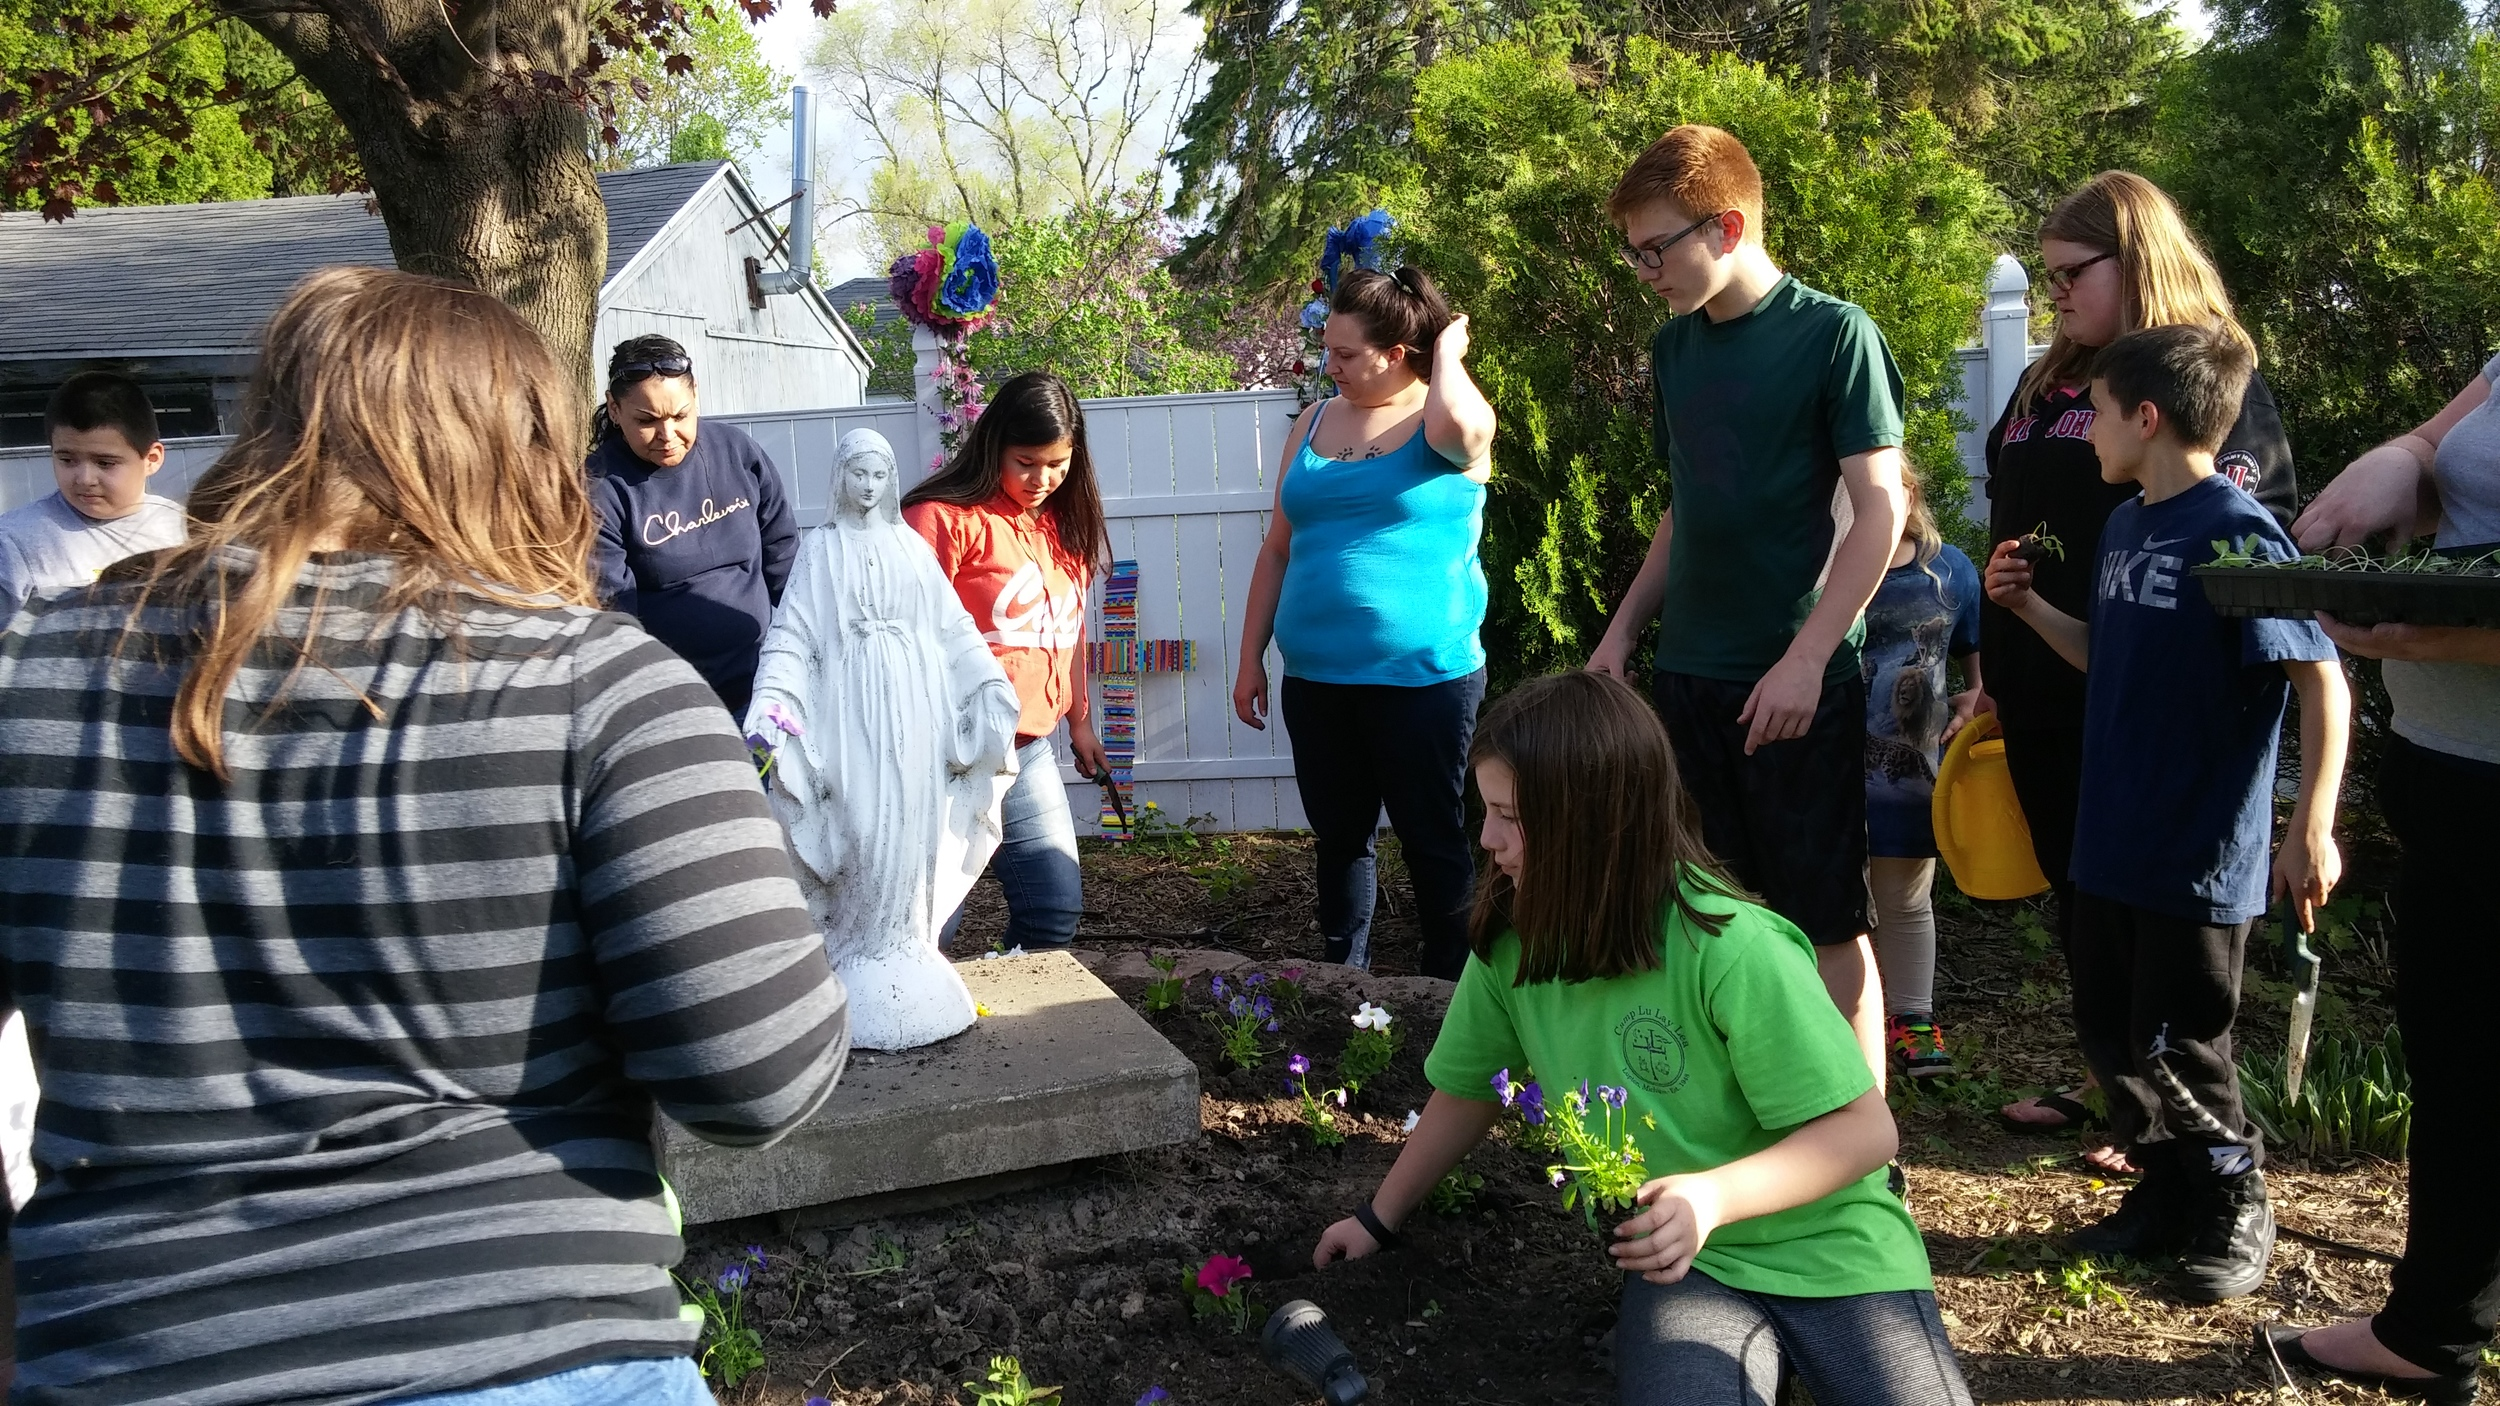 Several family members joined in our celebration and helped with the gardening. Thank you!